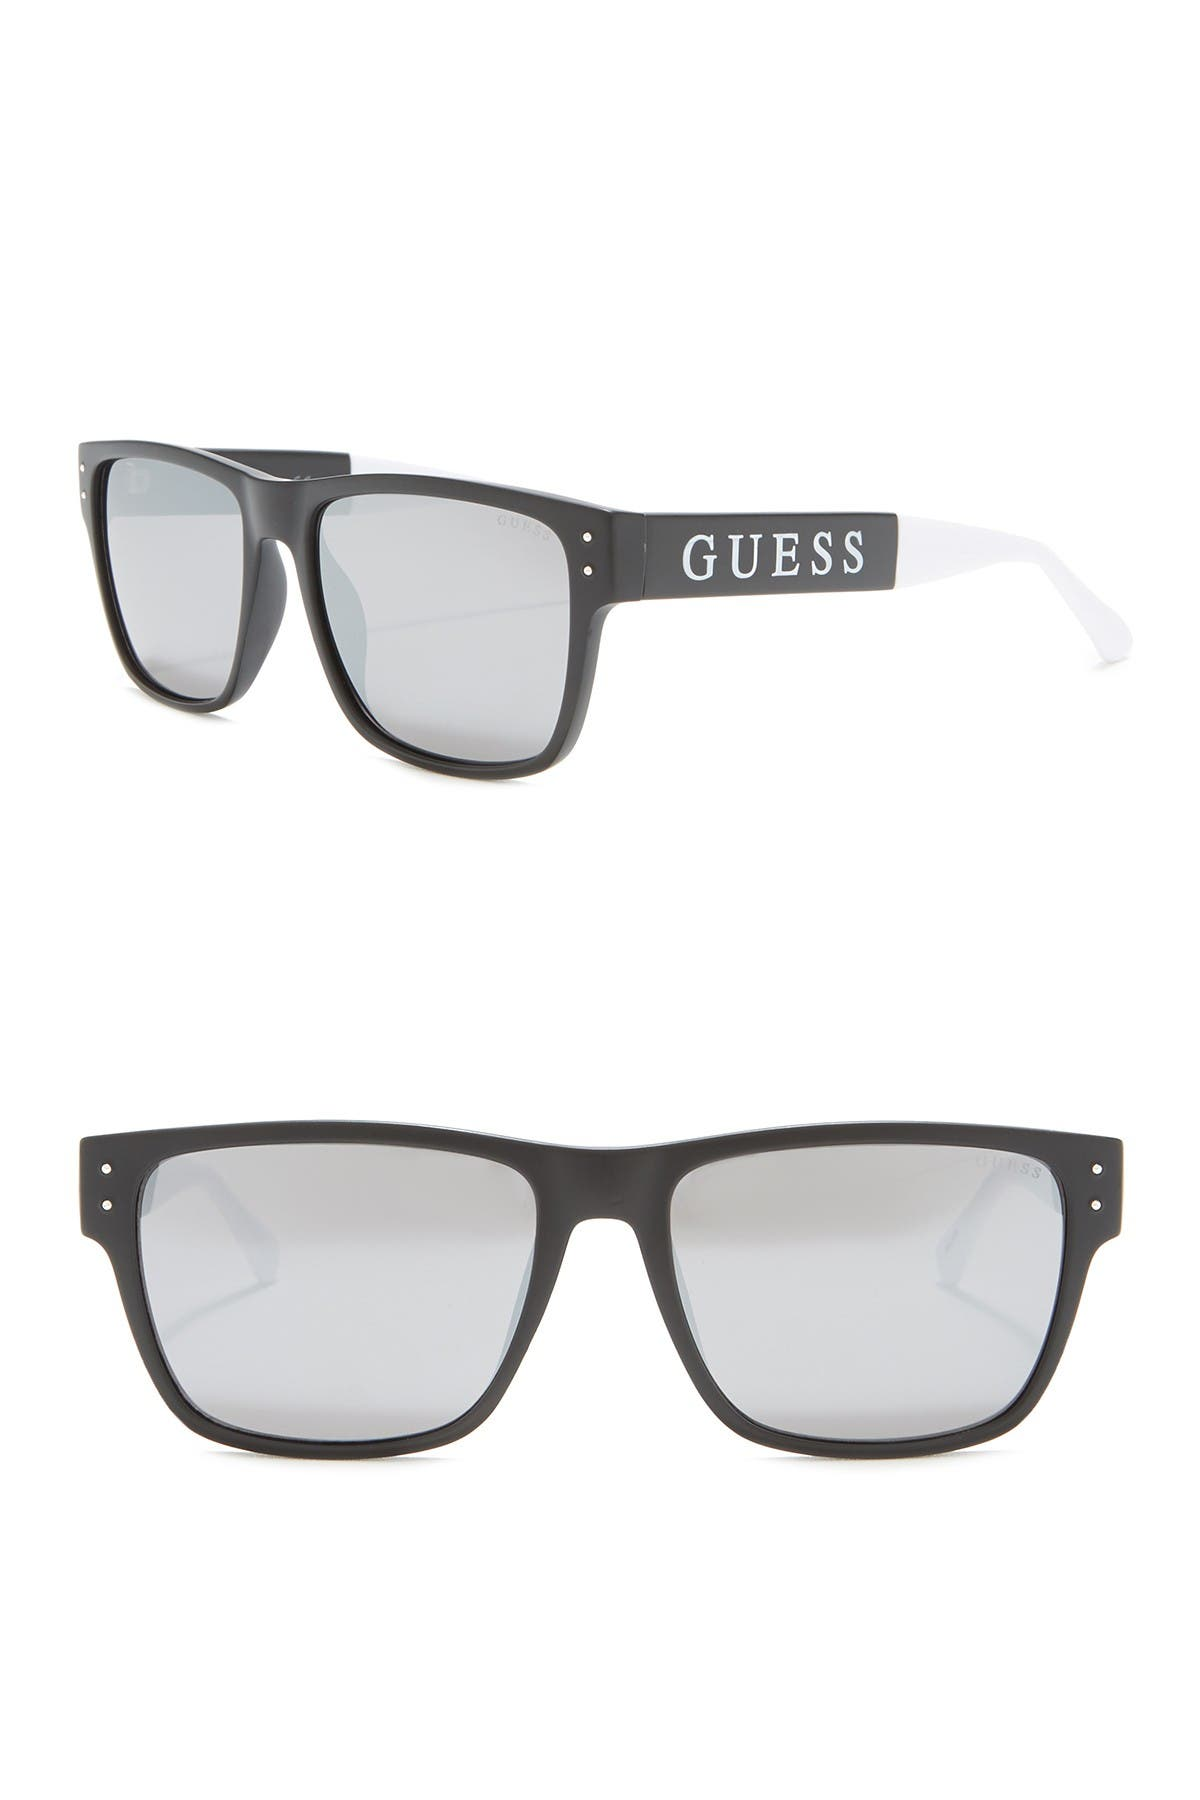 Image of GUESS 57mm Rectangle Sunglasses